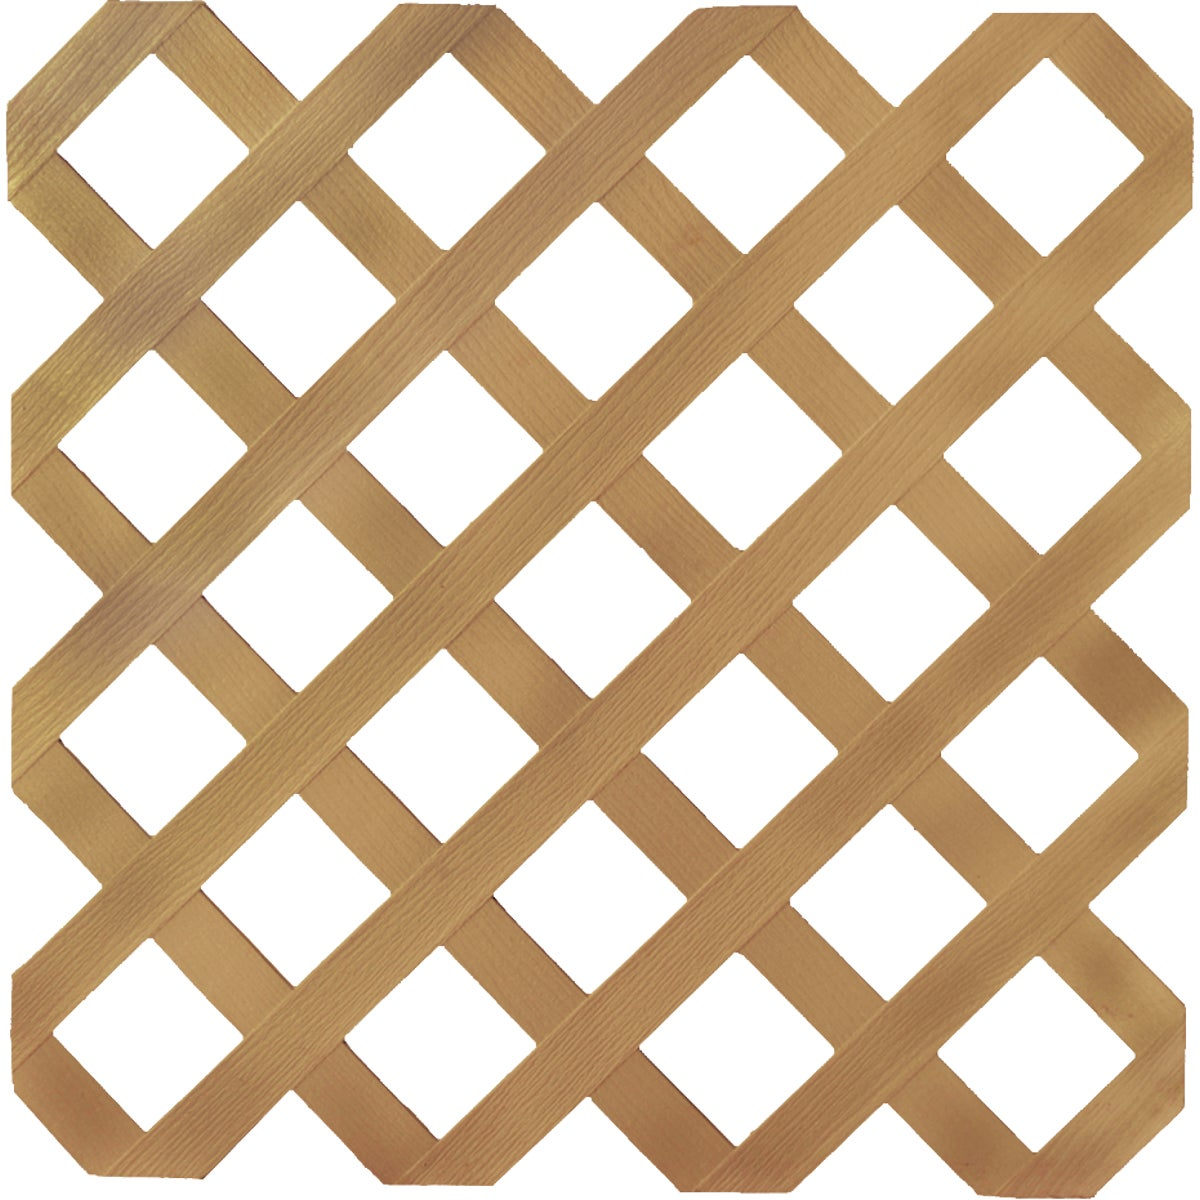 4X8 CEDAR LATTICE - 79899 by UfpiPlstc Lattice